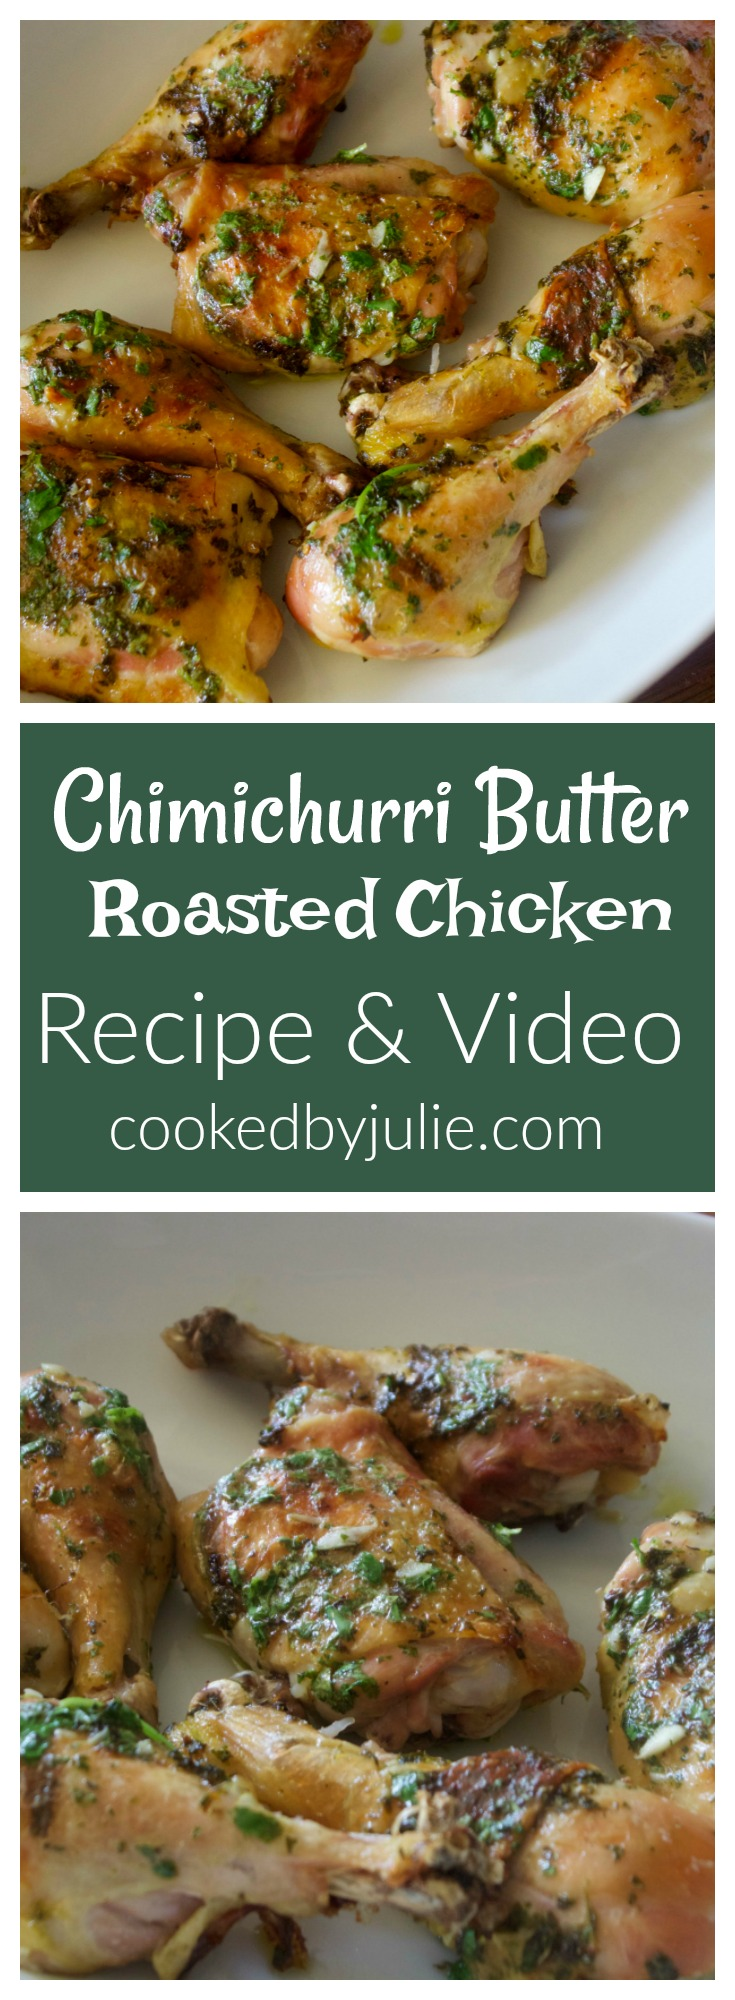 Chimichurri butter roasted chicken recipe with video.